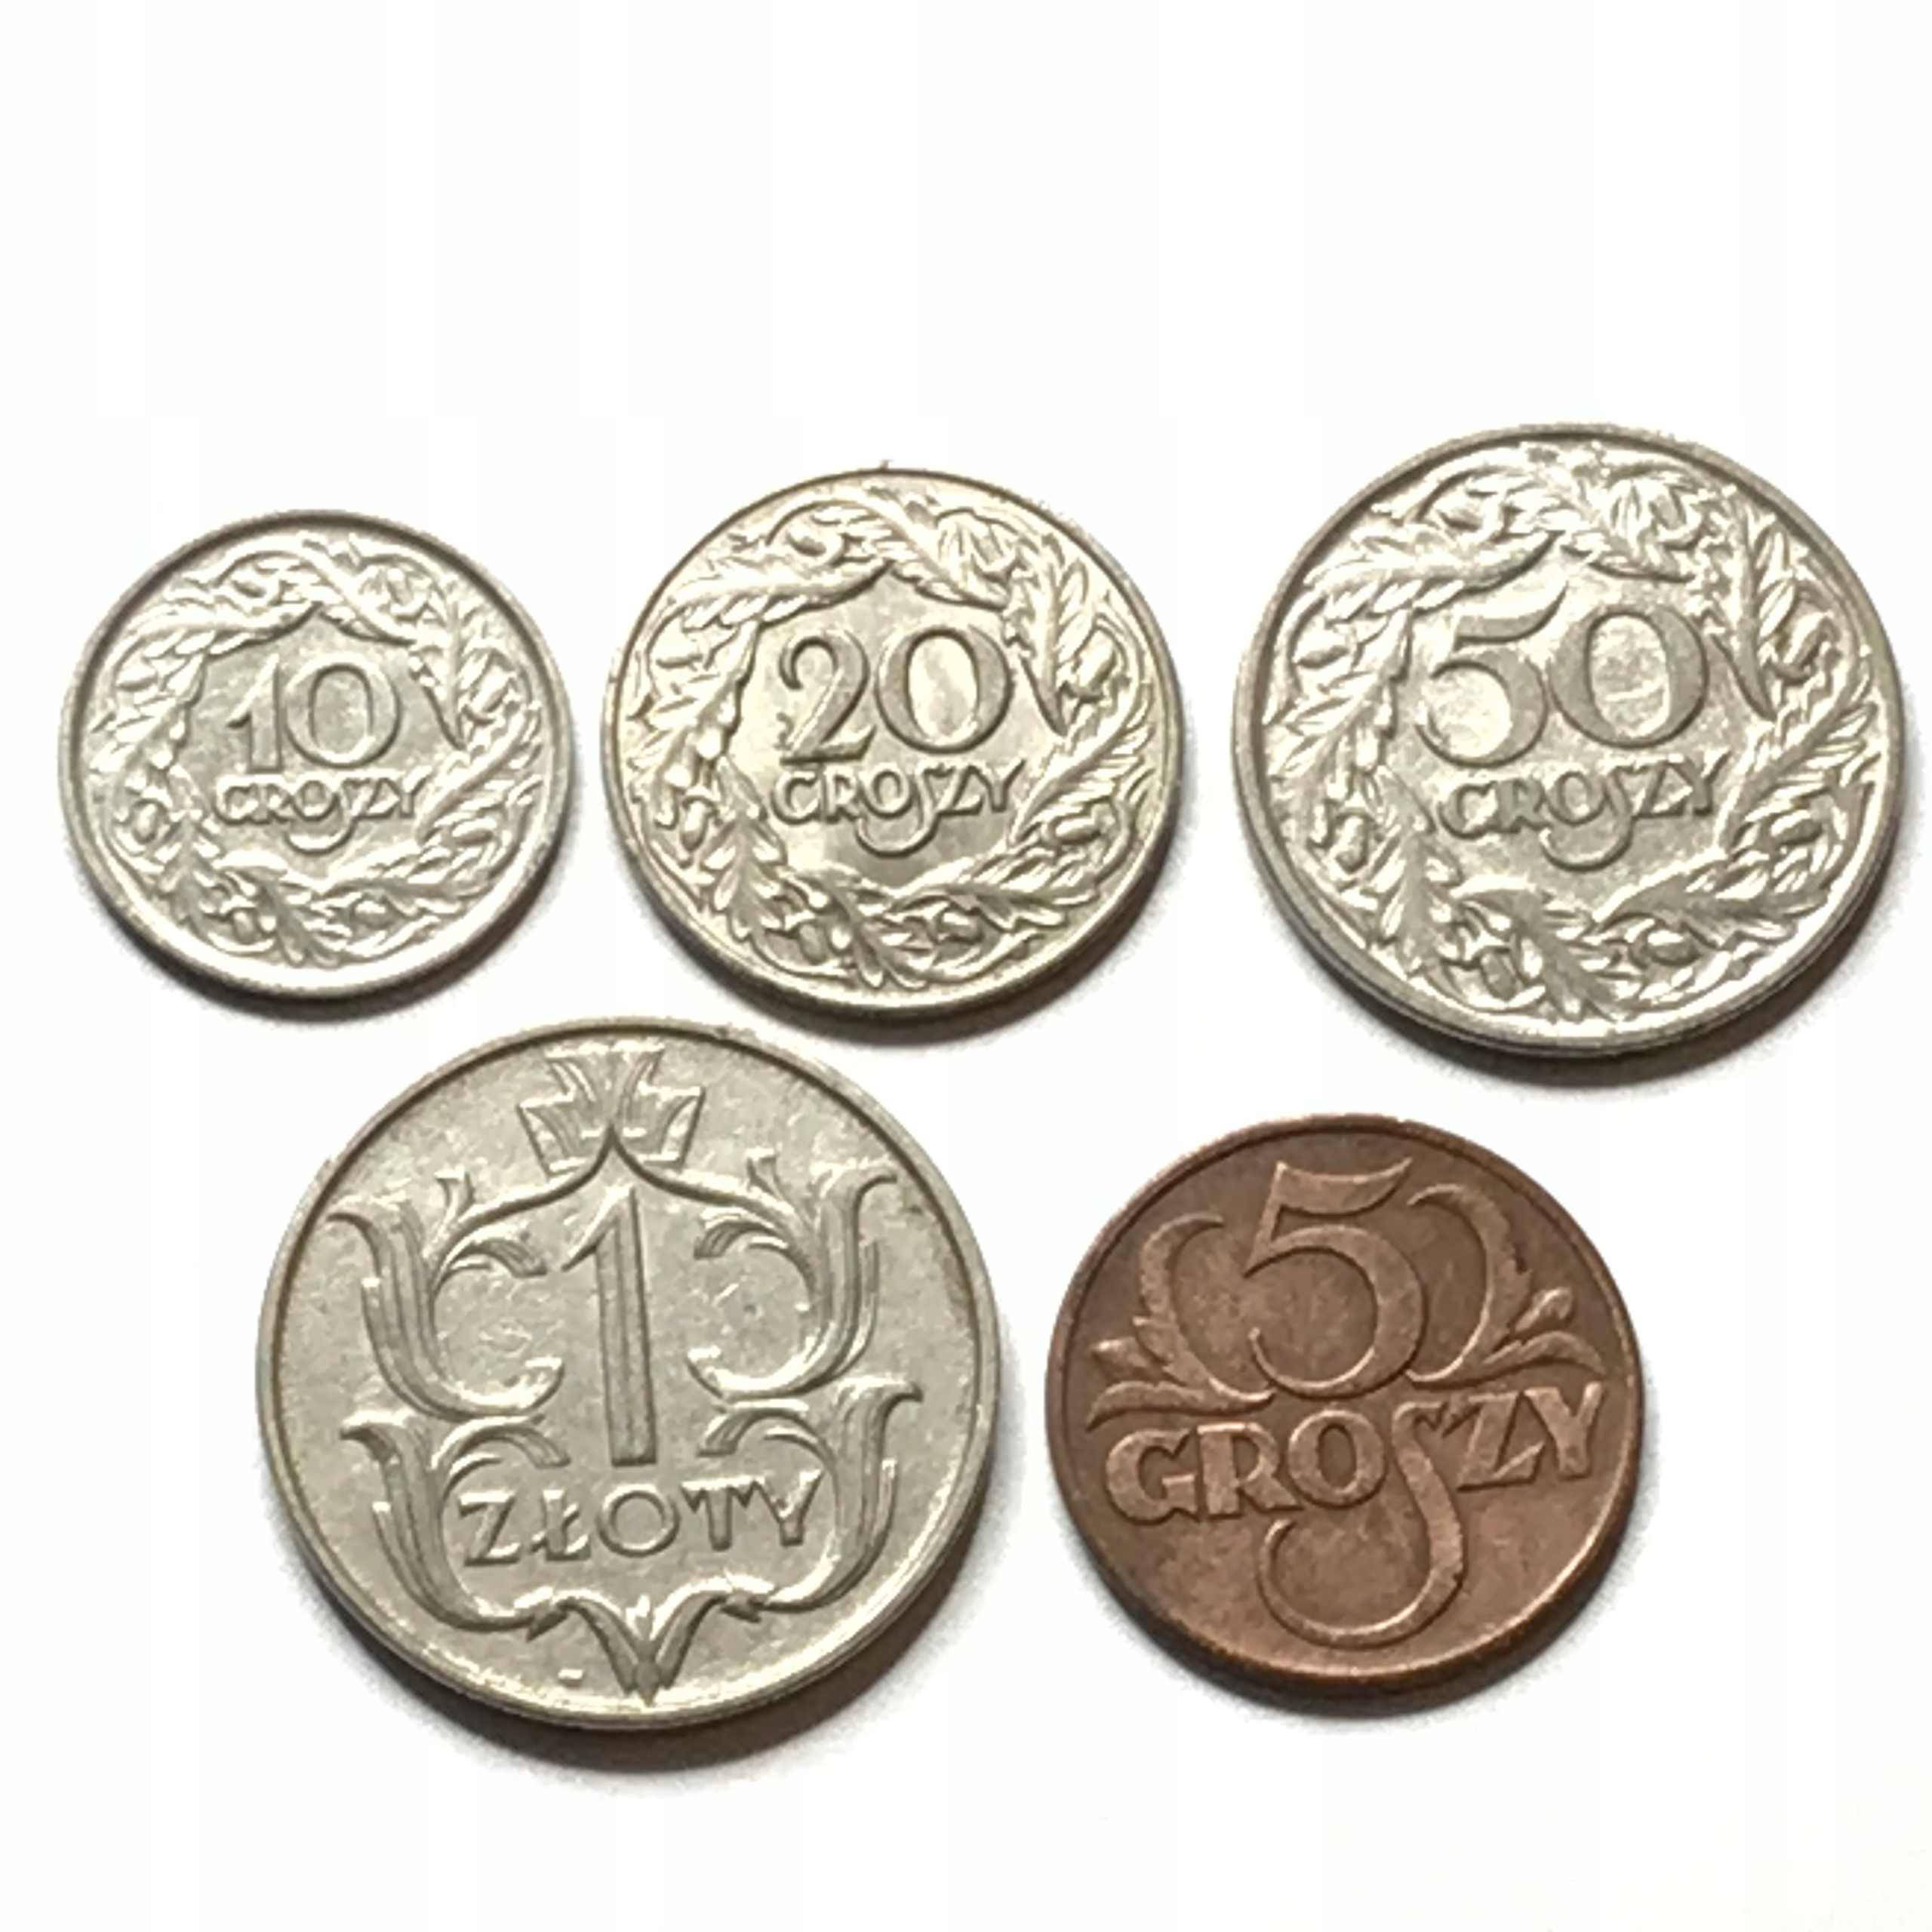 Item Set II RP 5 10 20 and 50 gr and 1 ruble 1923 - 1939